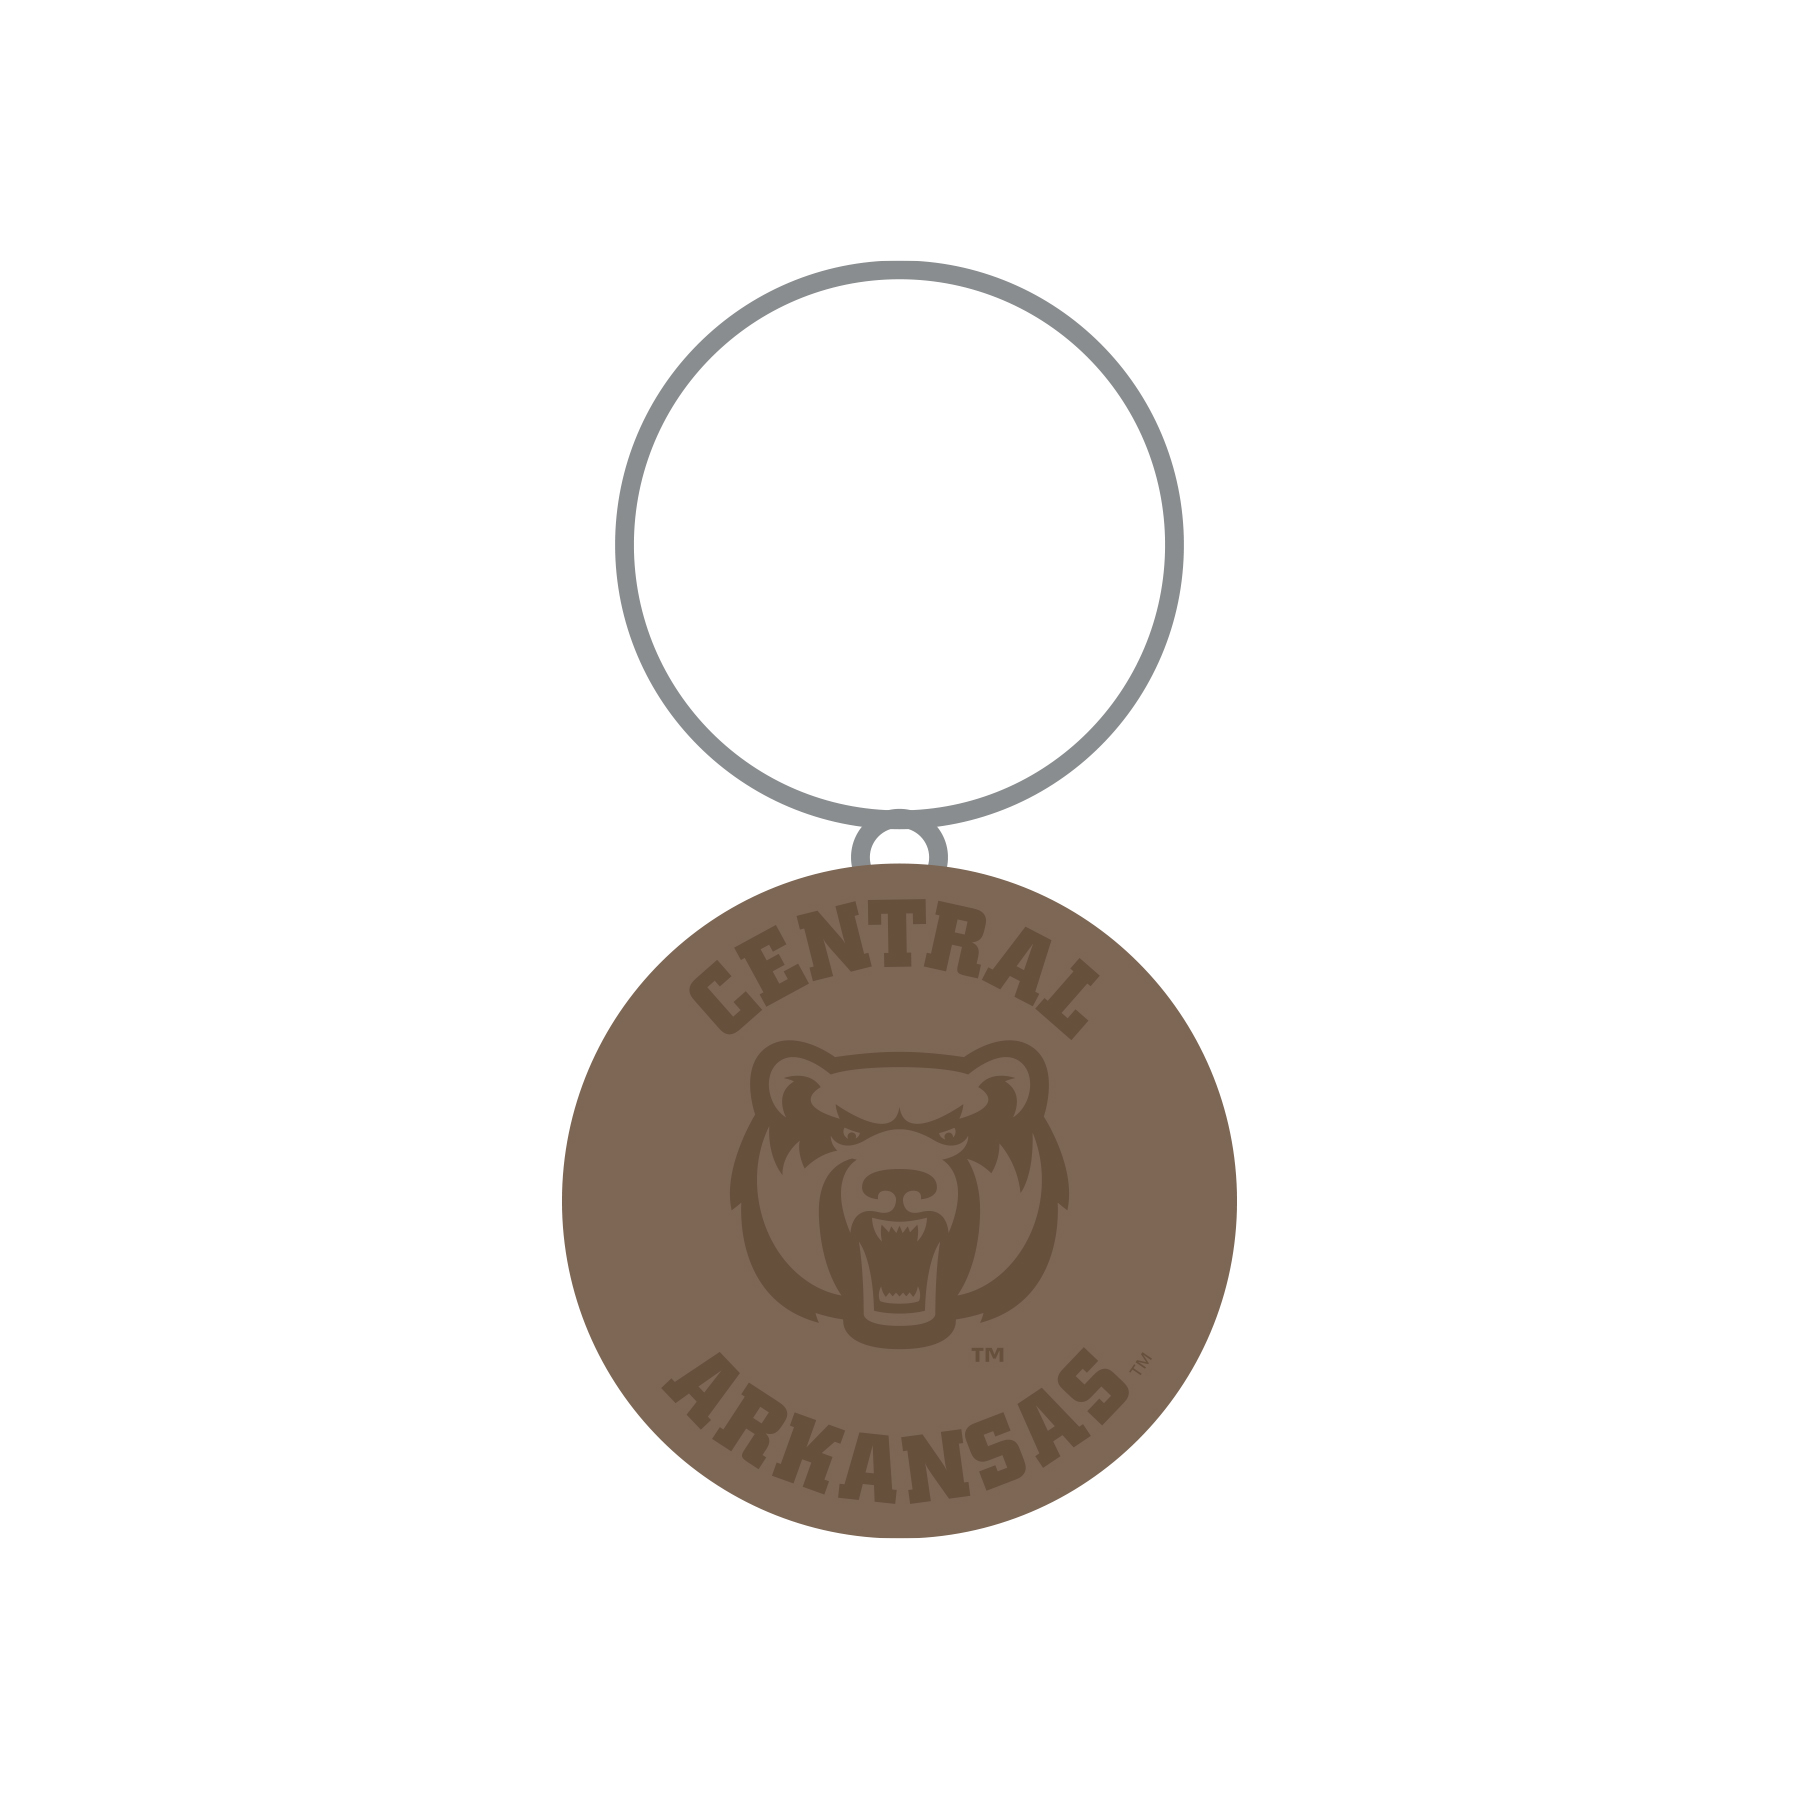 Central Arkansas Wooden Keytags